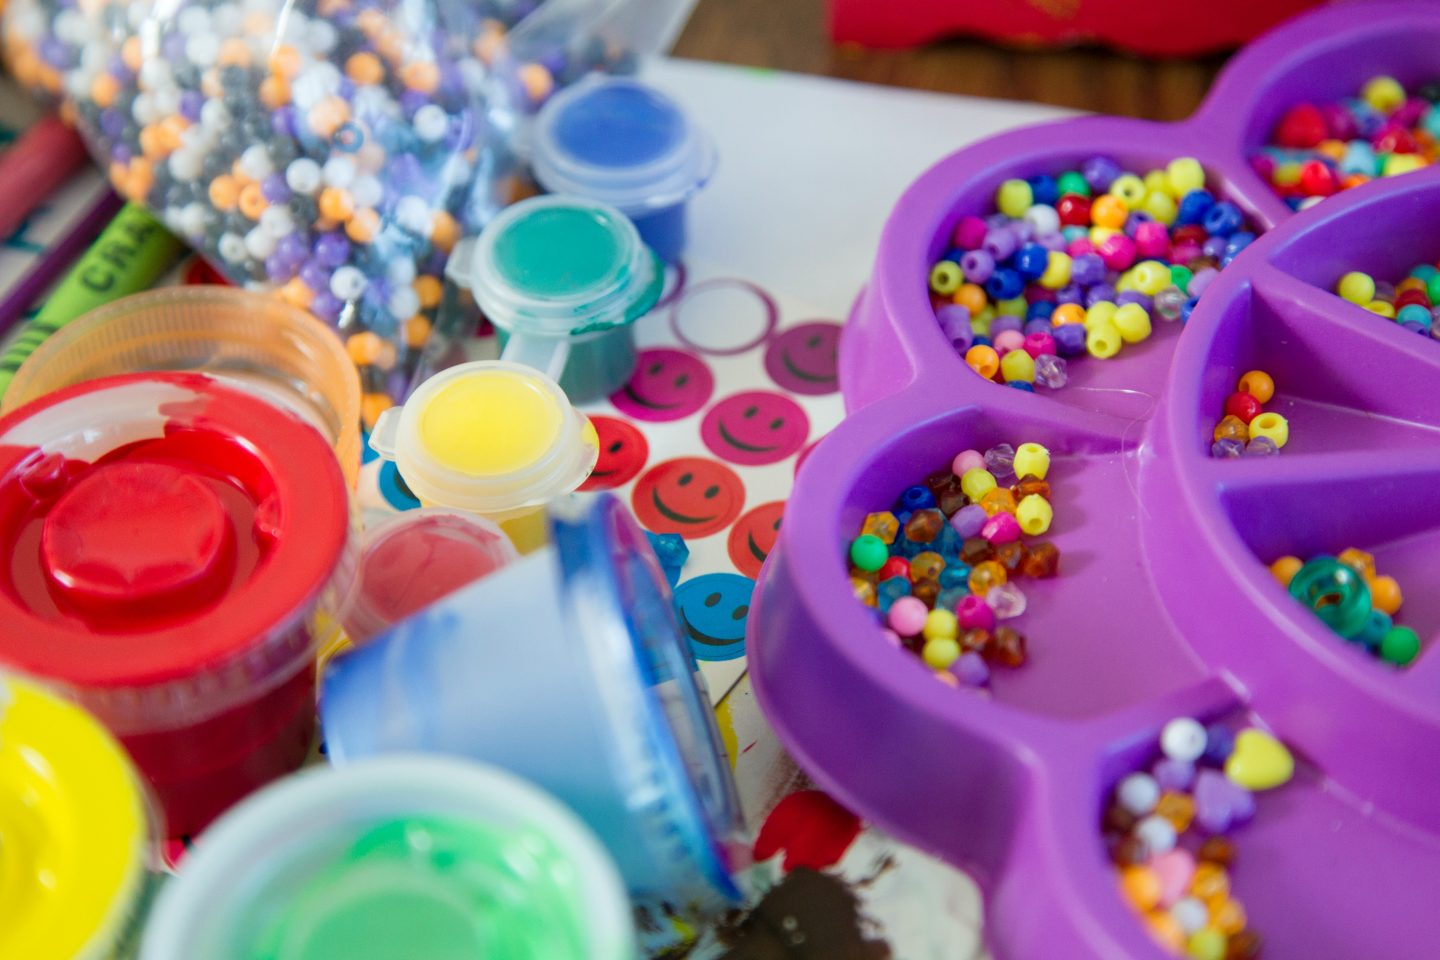 8 benefits of crafting with your kids